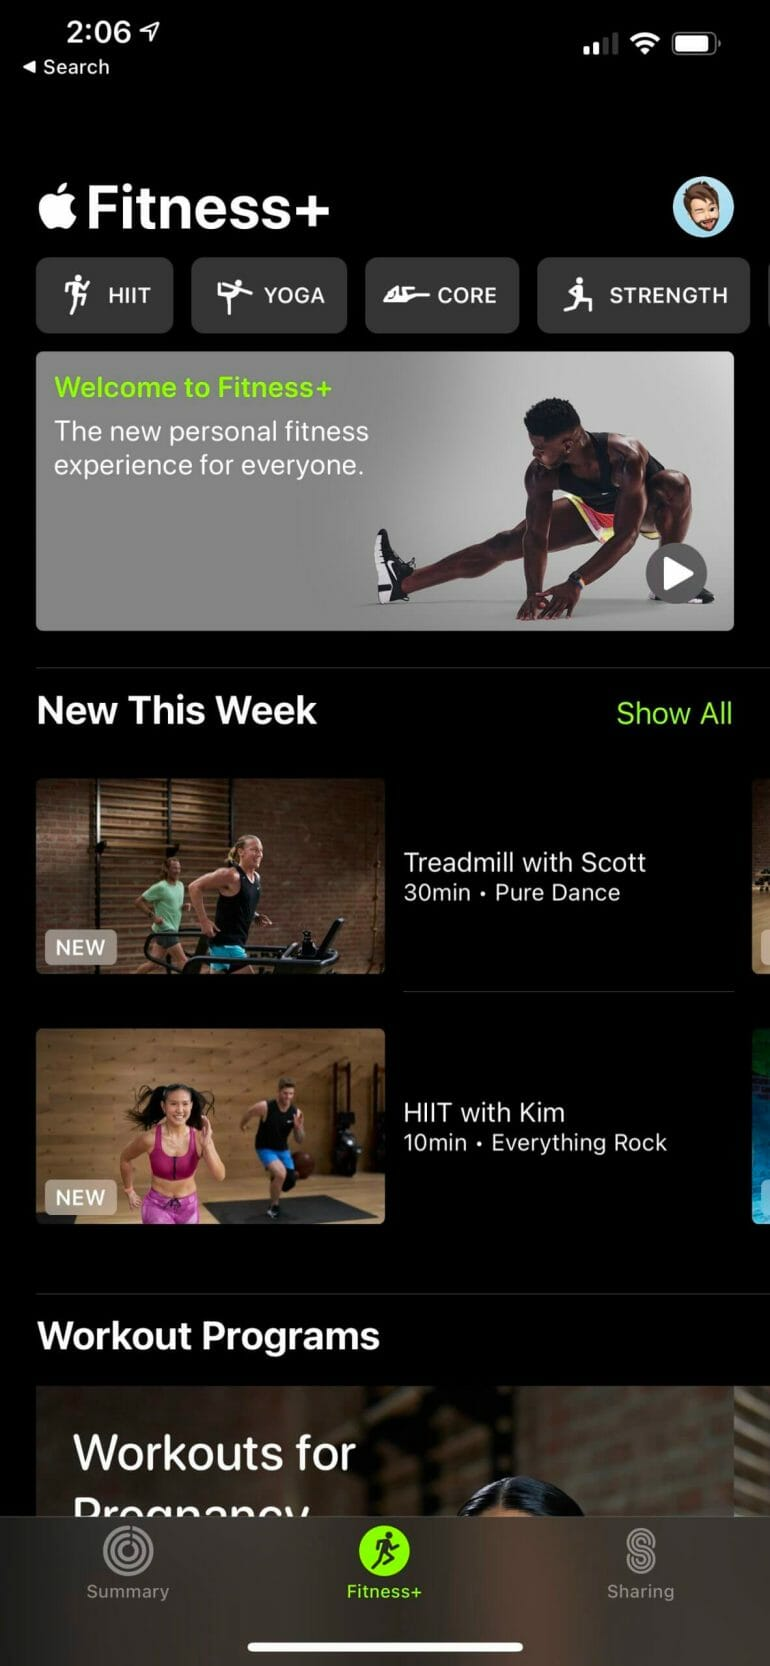 Apple's Fitness+ platform features a ton of workouts you can do at home.